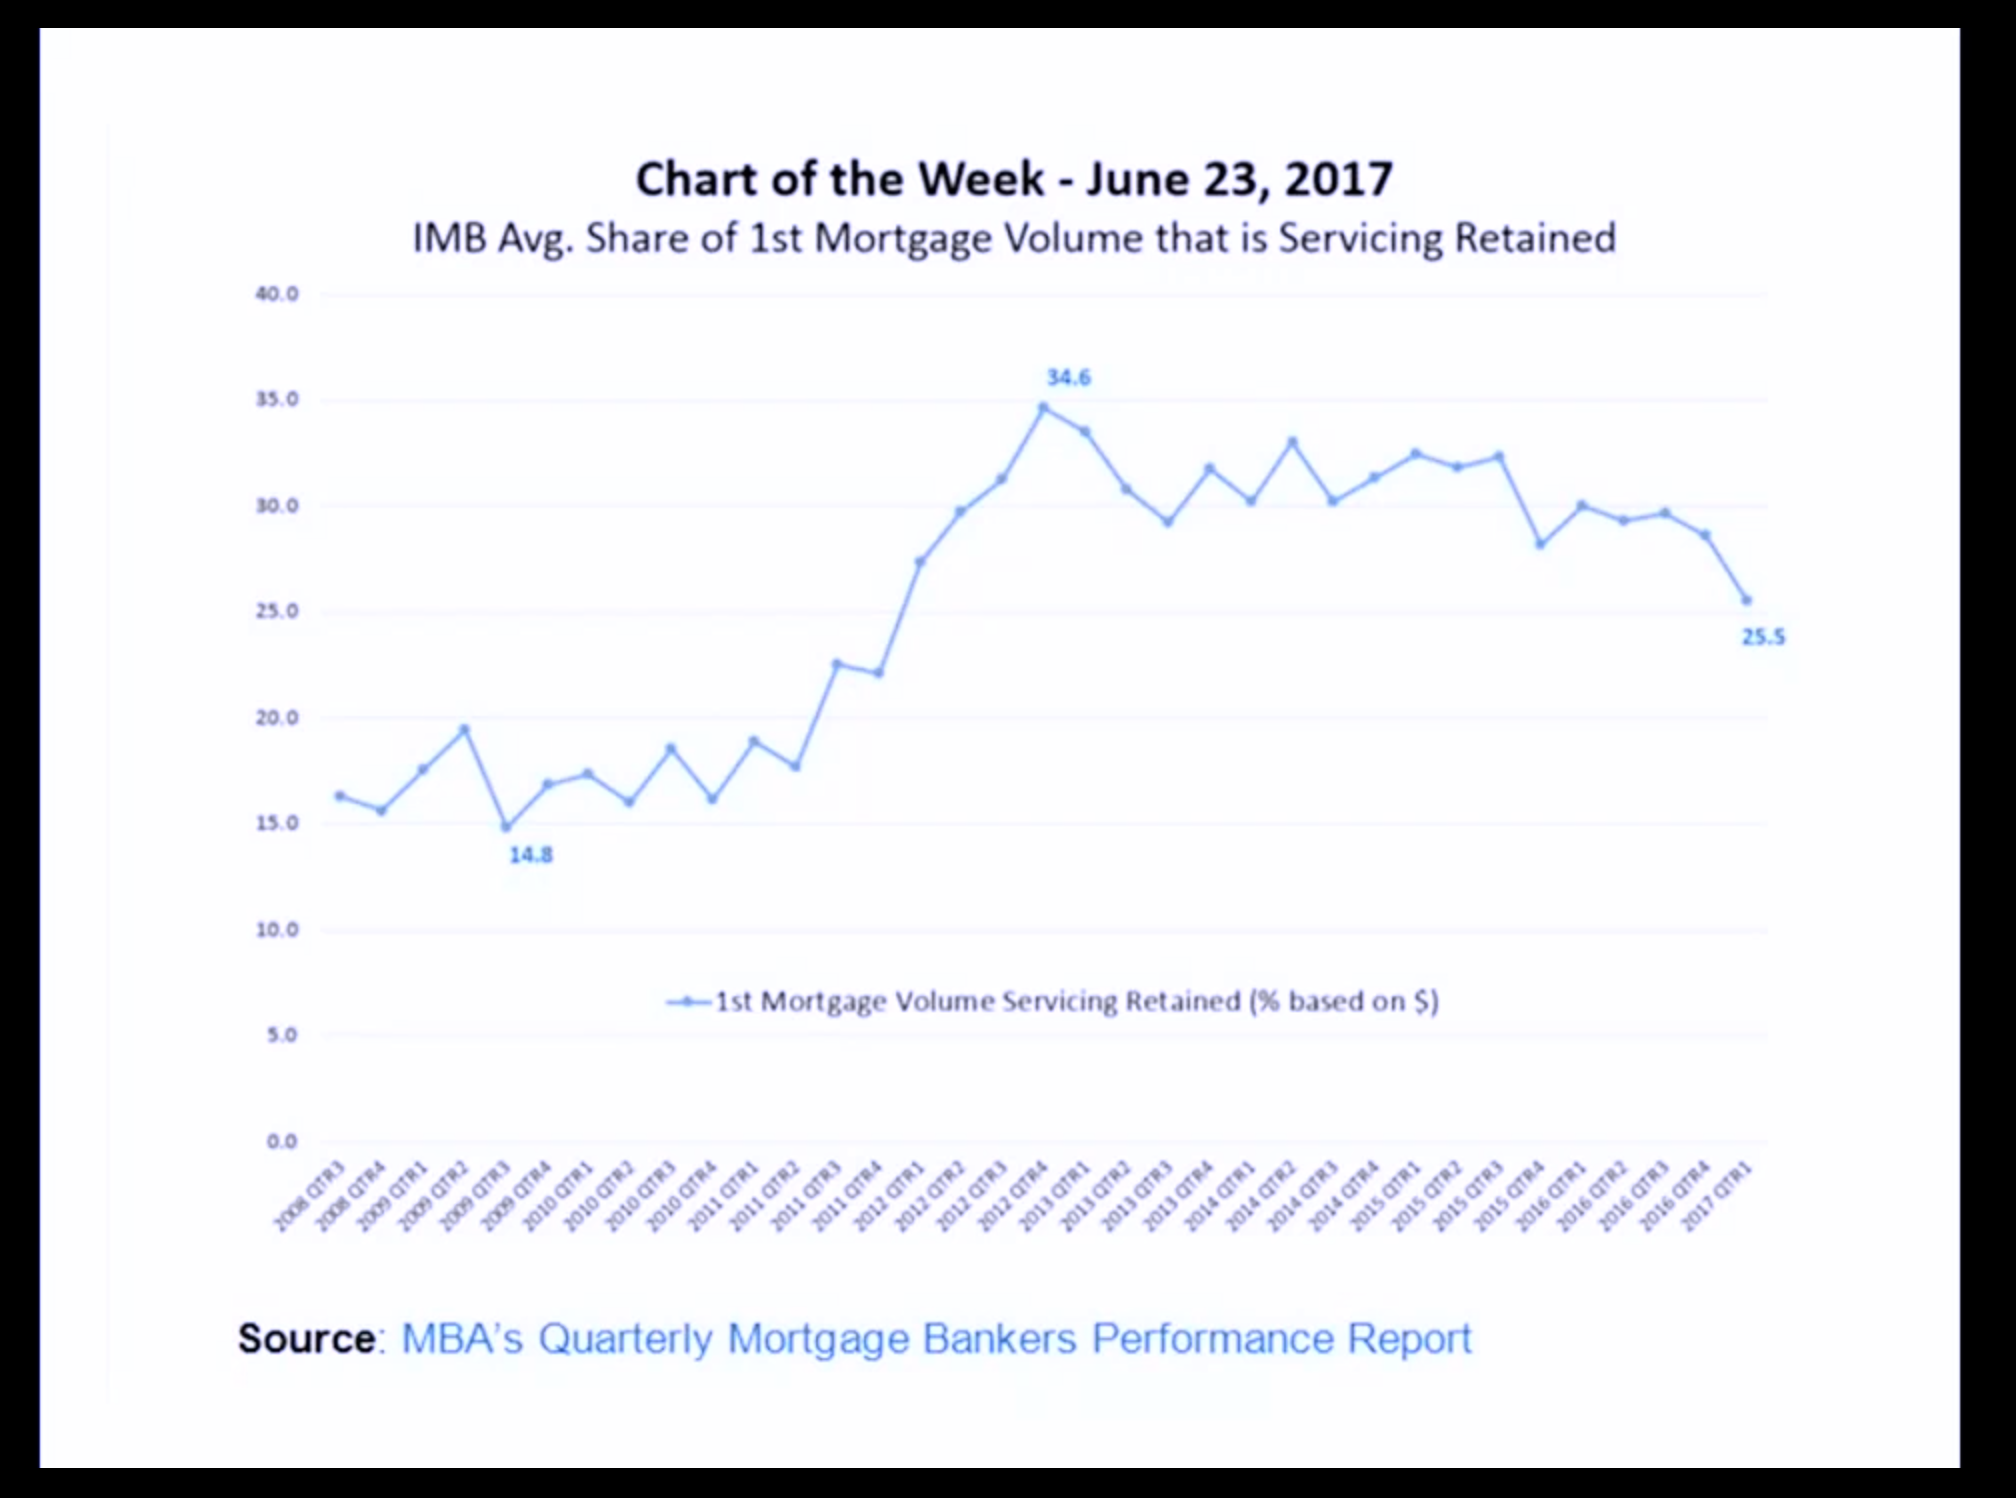 Artwork for August-3-2017-LOOK HERE. 1st Mortgage Volume Servicing Retained